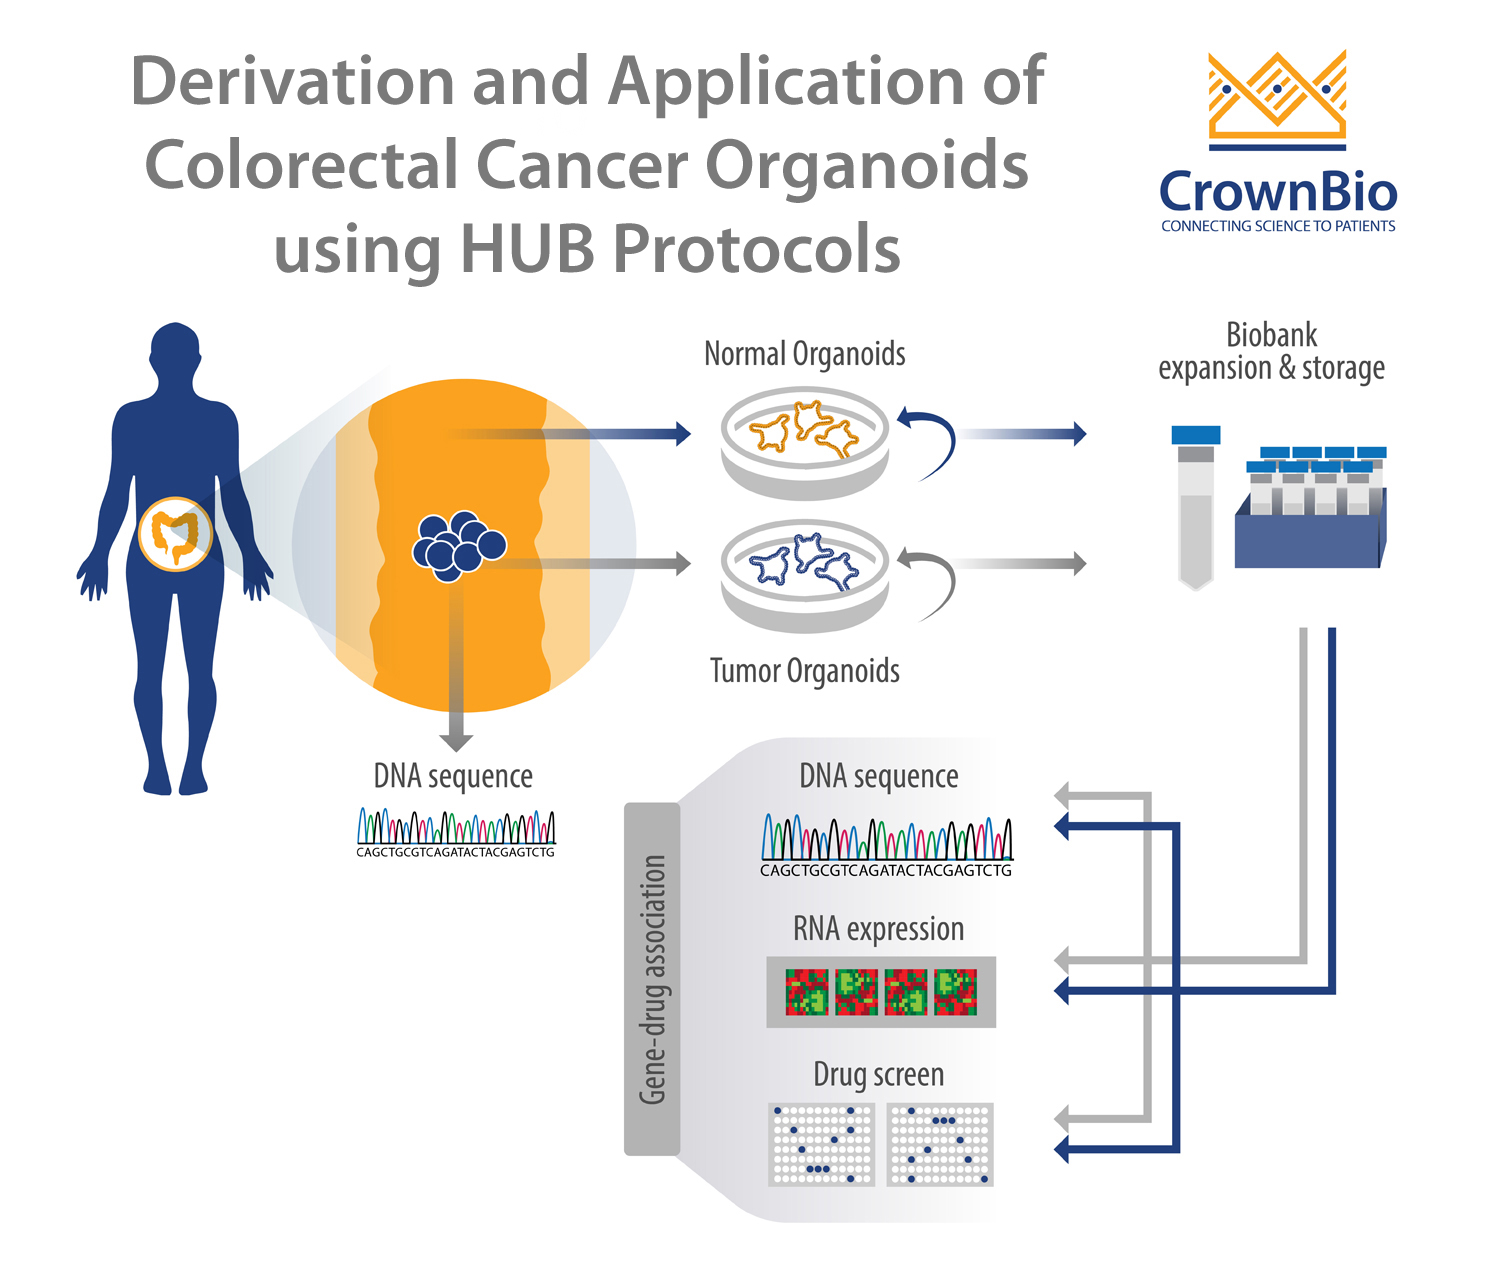 Tumor Organoids and the HUB Protocol Method